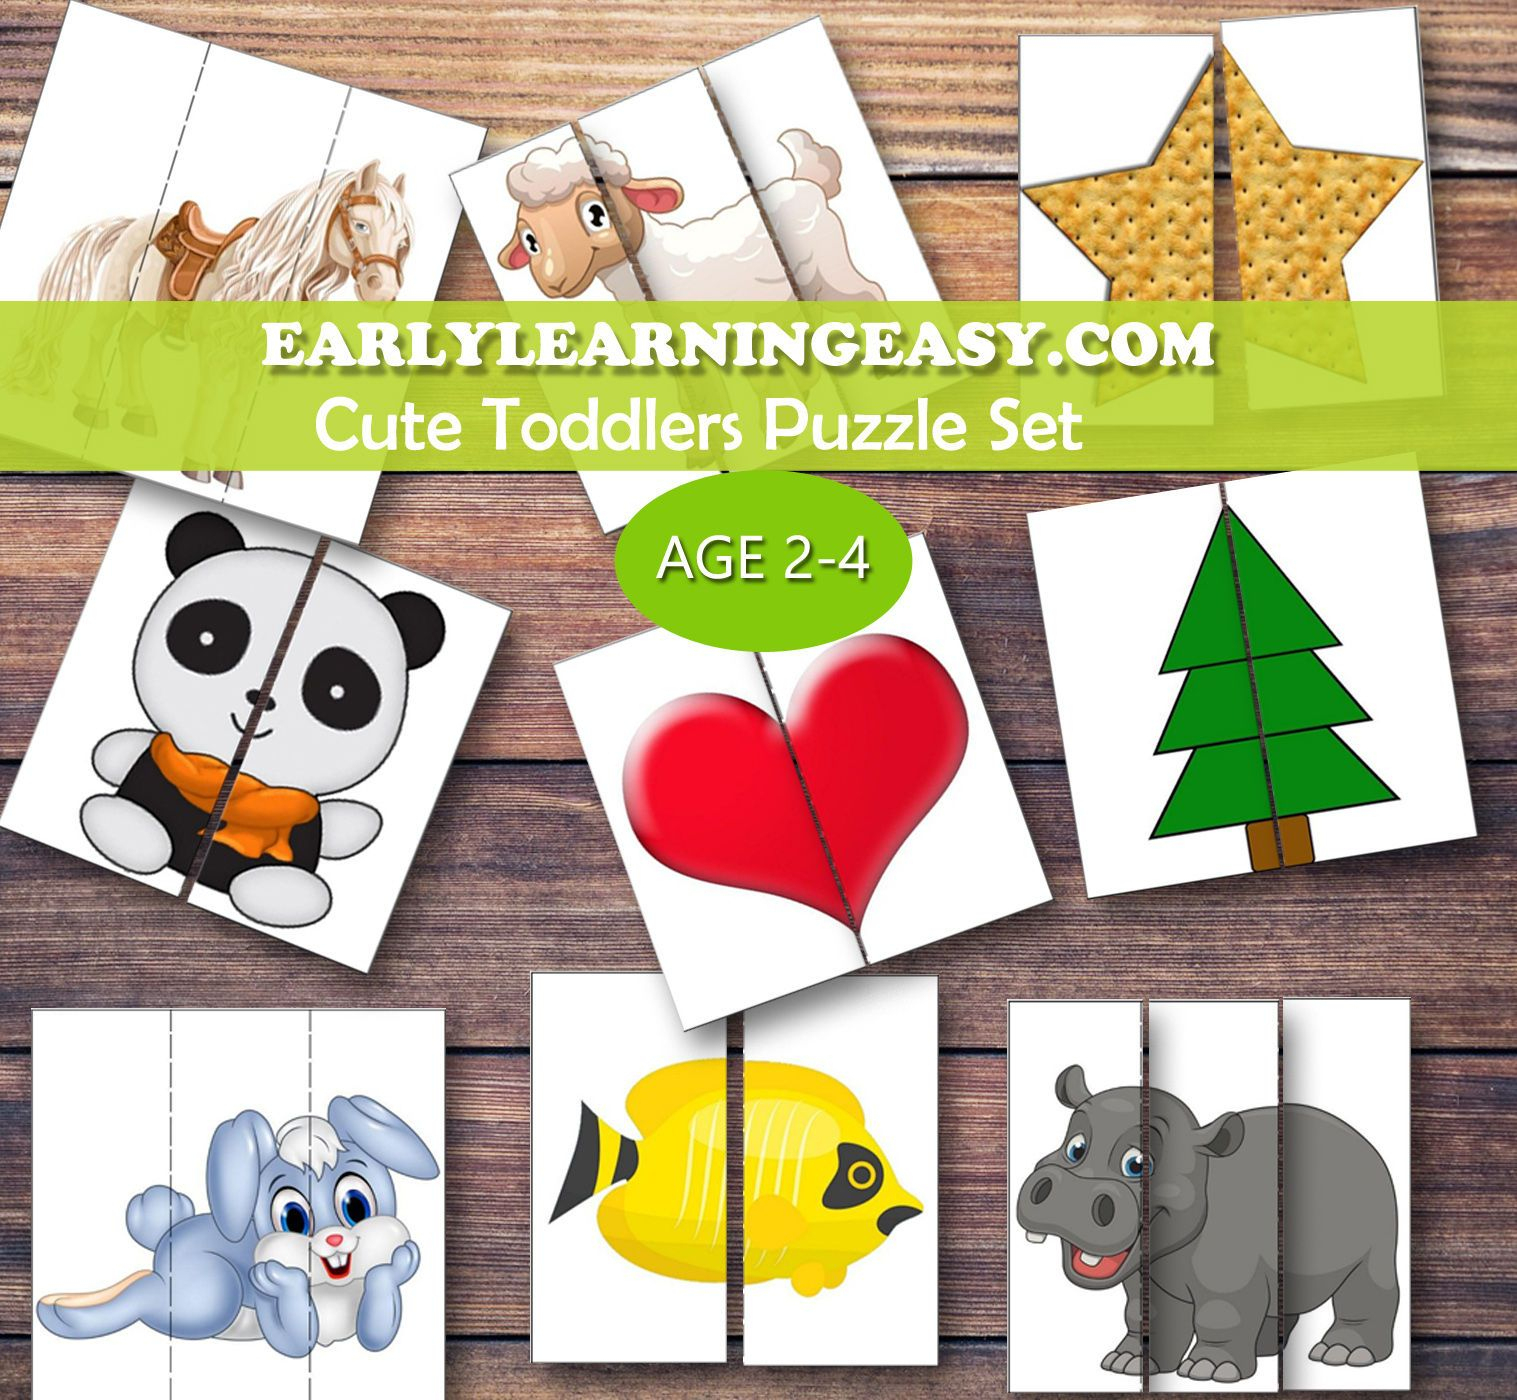 Spring Easter | Mdo 2 | Puzzles For Toddlers, Kids Education - Printable Puzzles For Toddlers